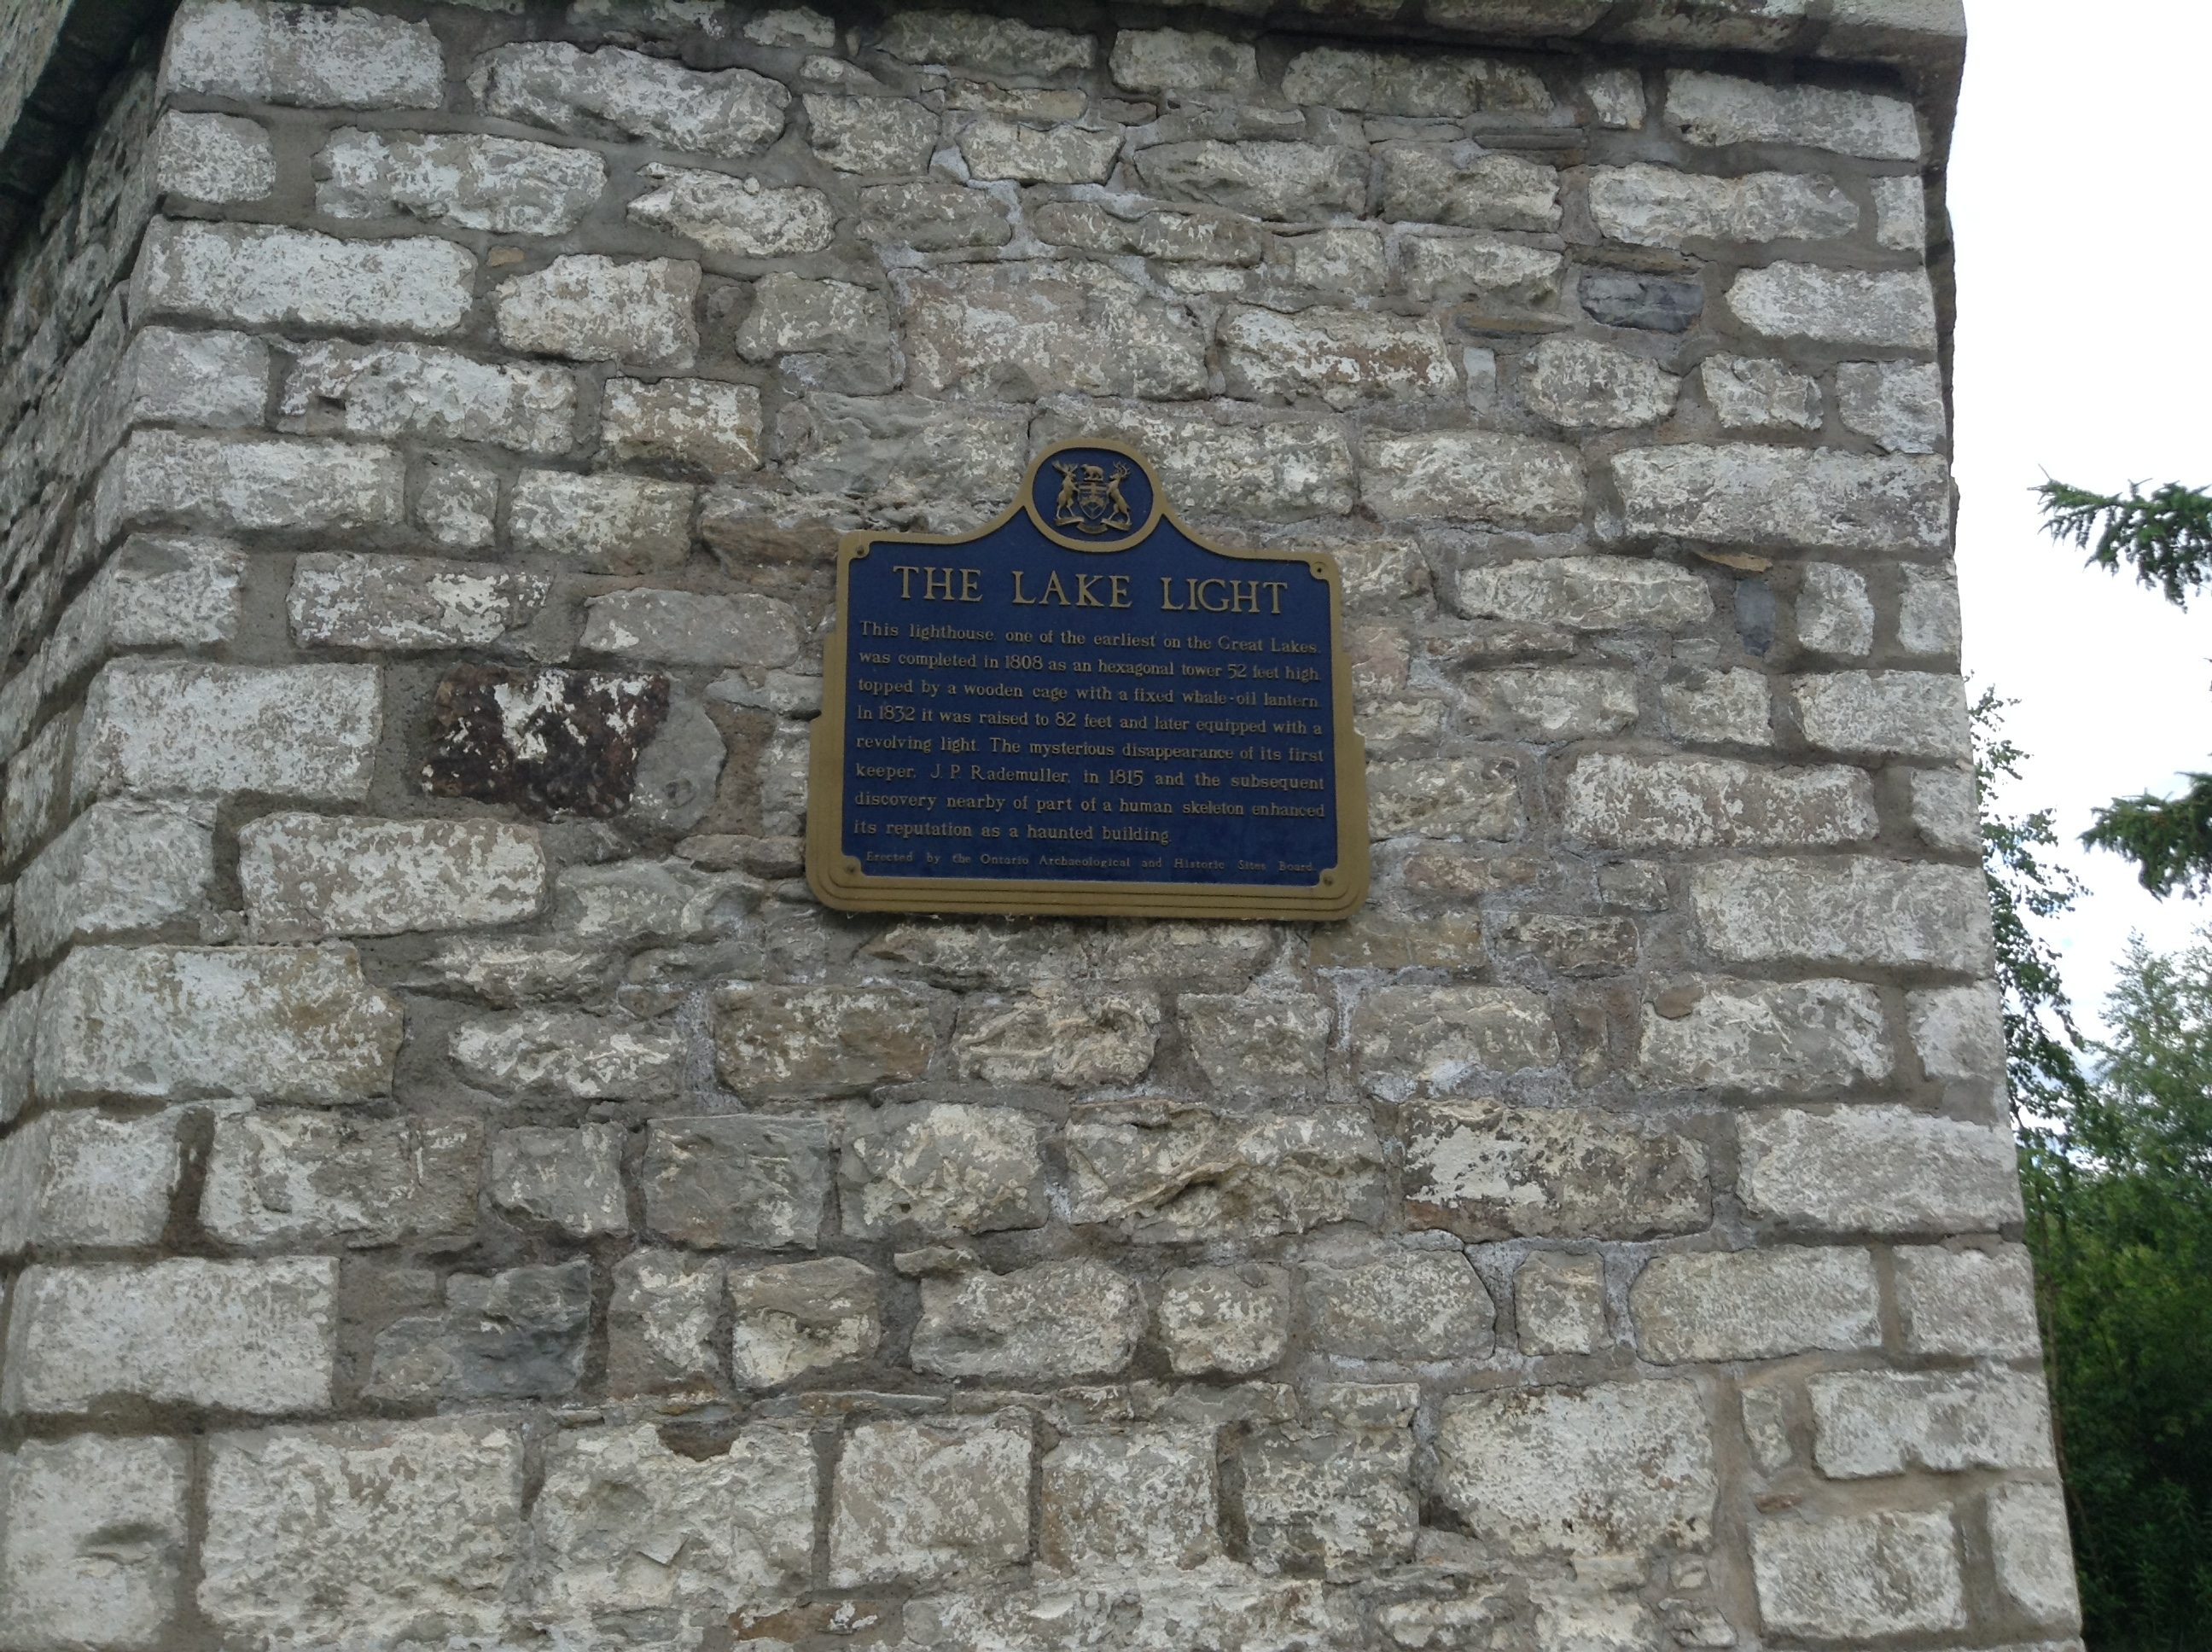 The historical plaque on the Gibraltar Point lighthouse. Photo by Erin Sylvester.